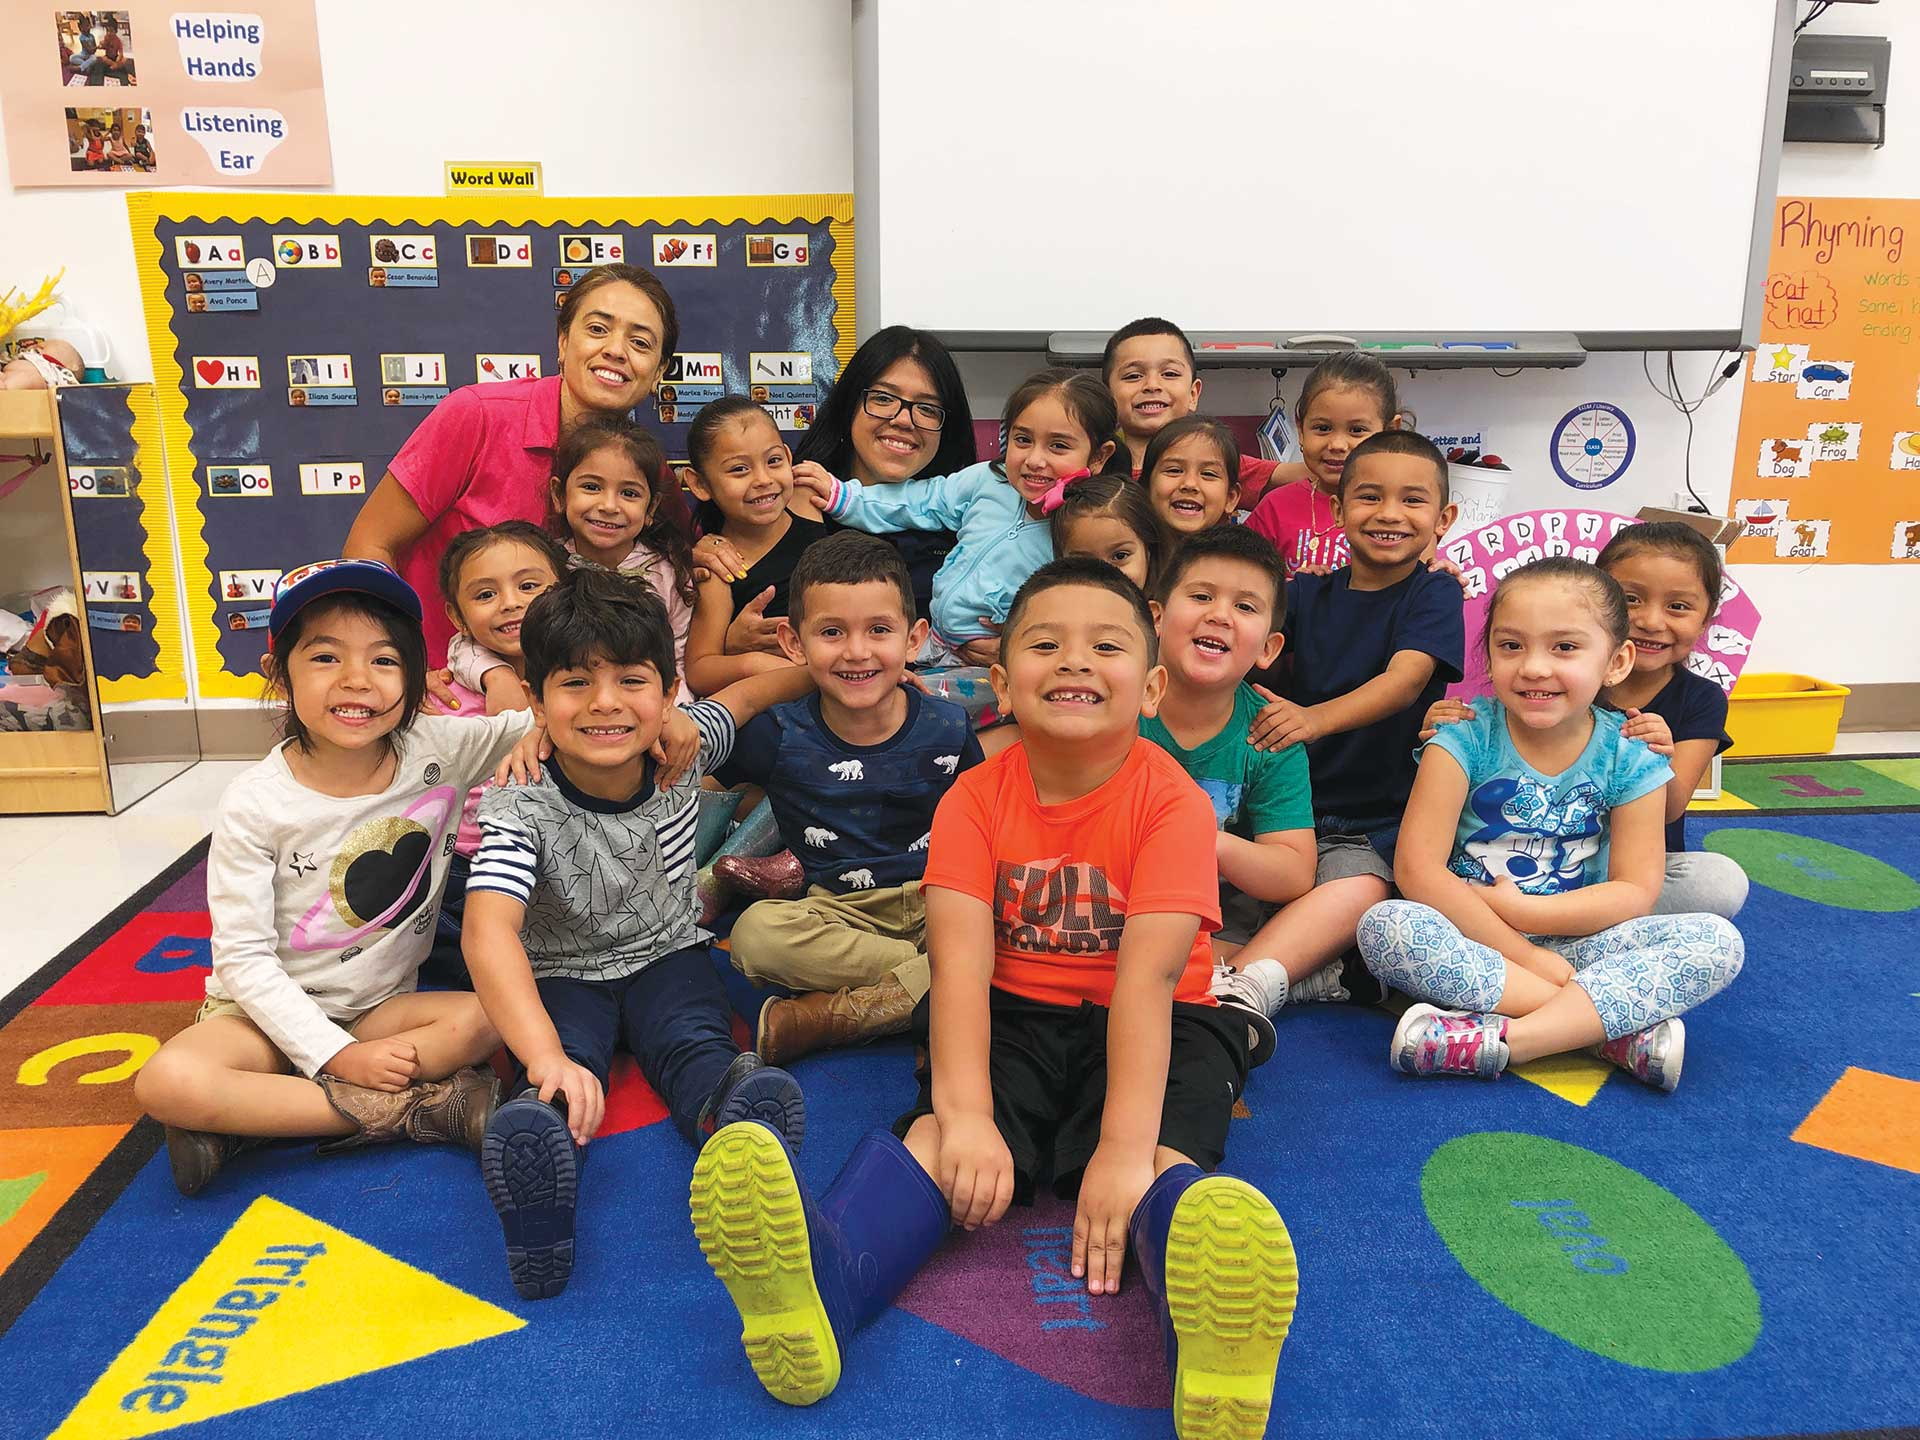 Guadalupe Center Early Childhood Education Program Students